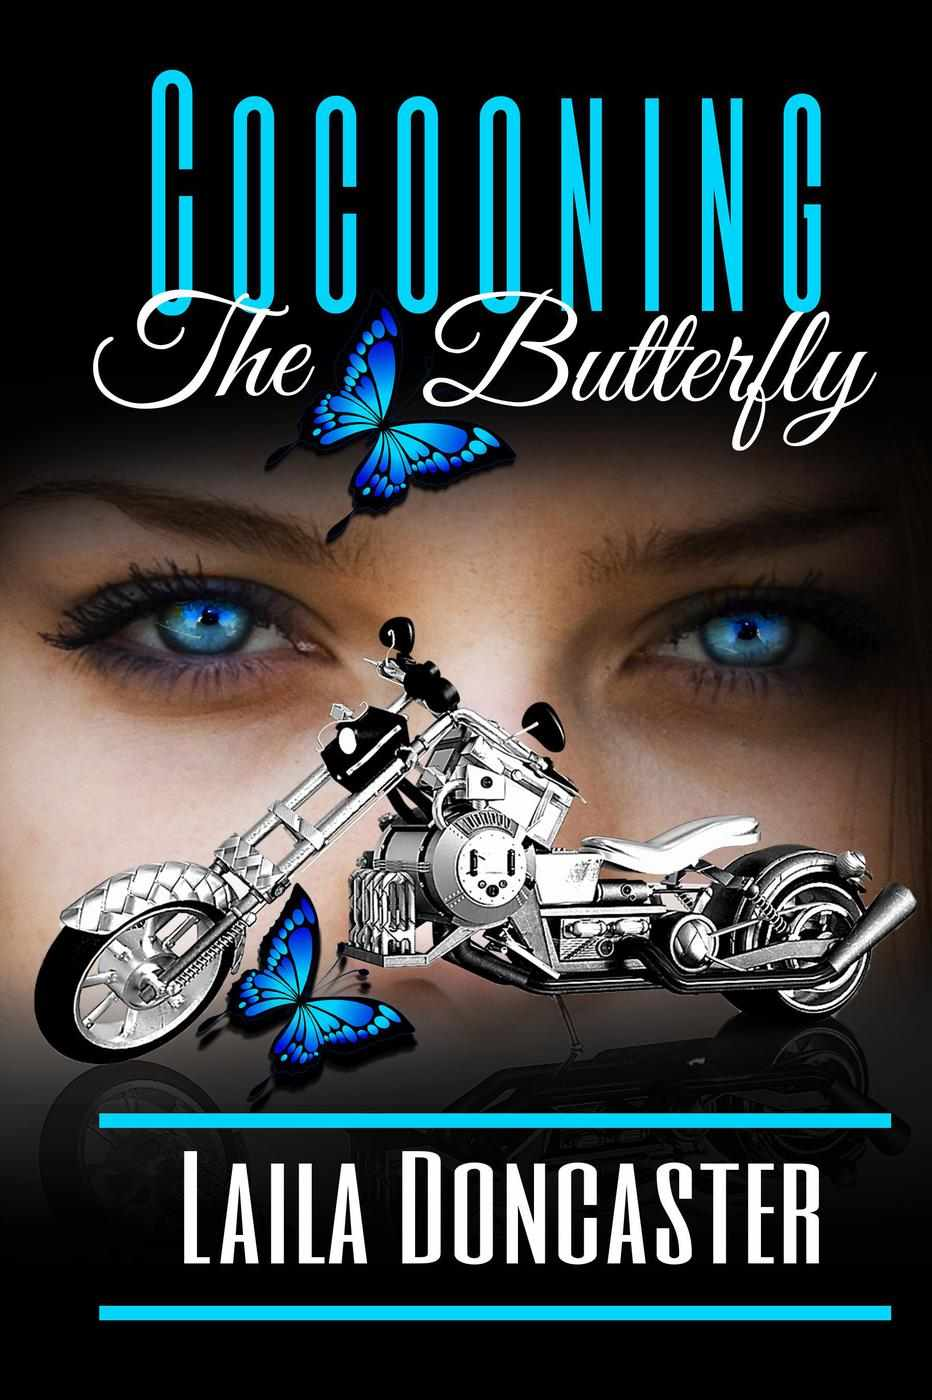 Cocooning The Butterfly by Author Laila Doncaster